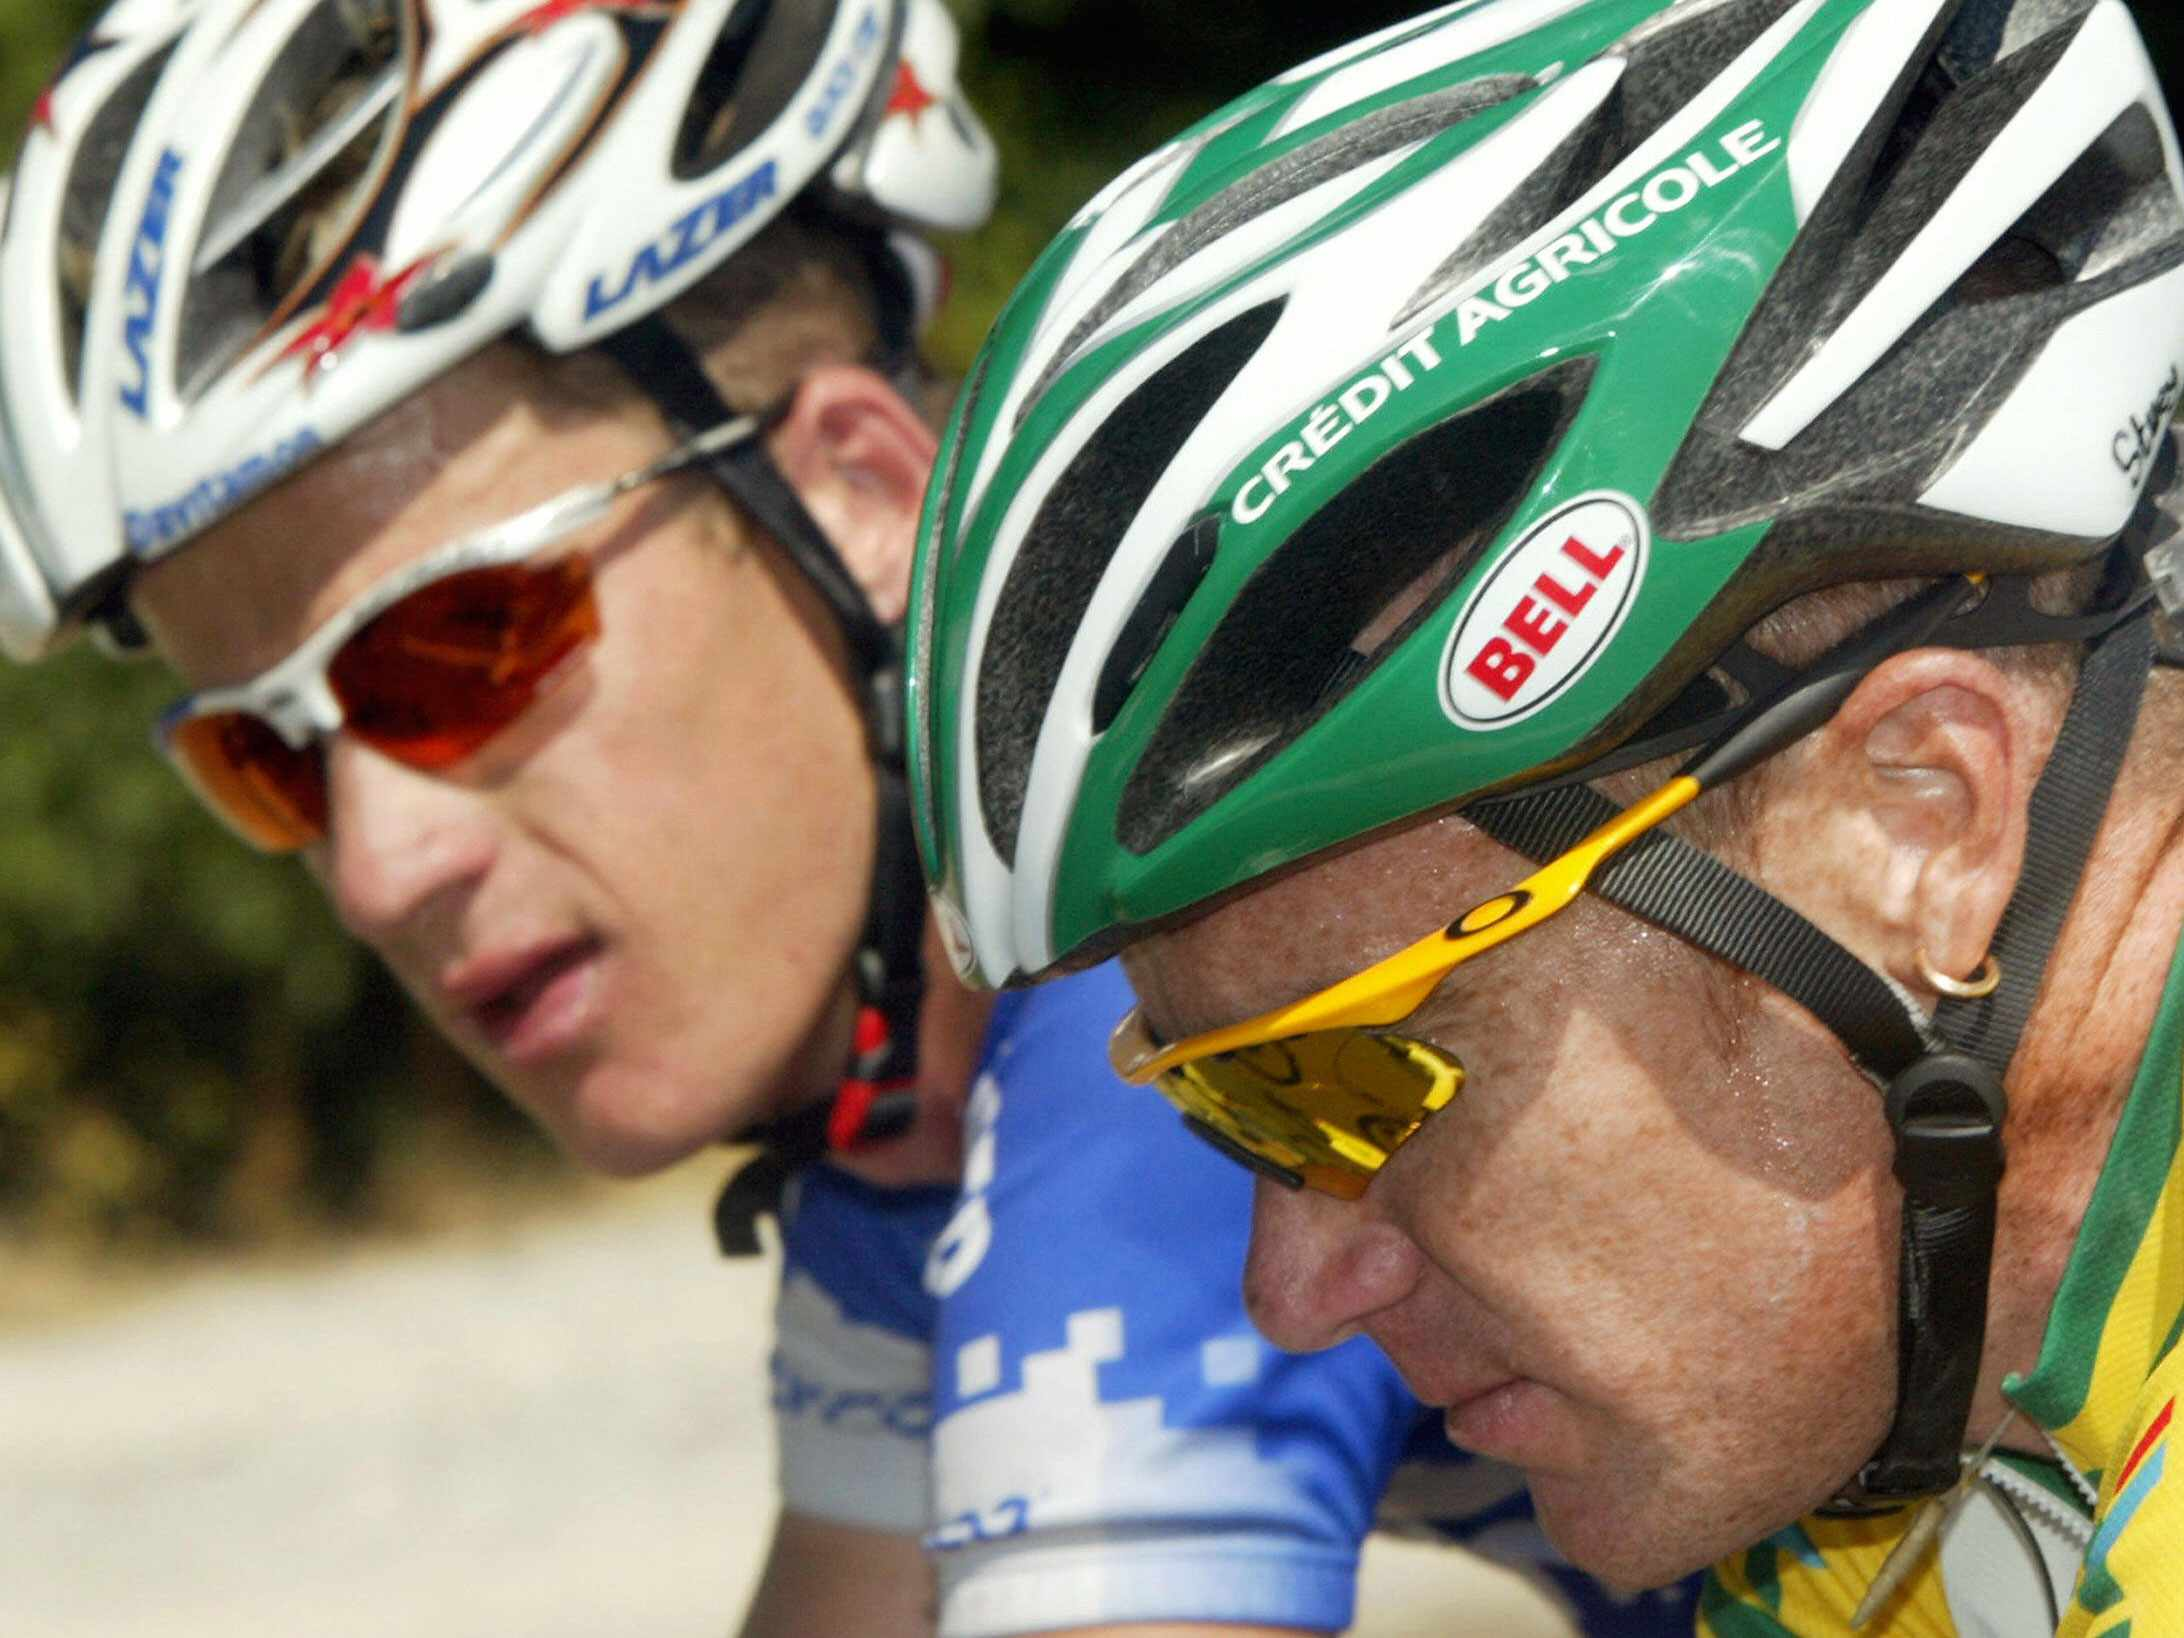 O'Grady (right) and Rogers (left) are favourites to win this year's Tour.